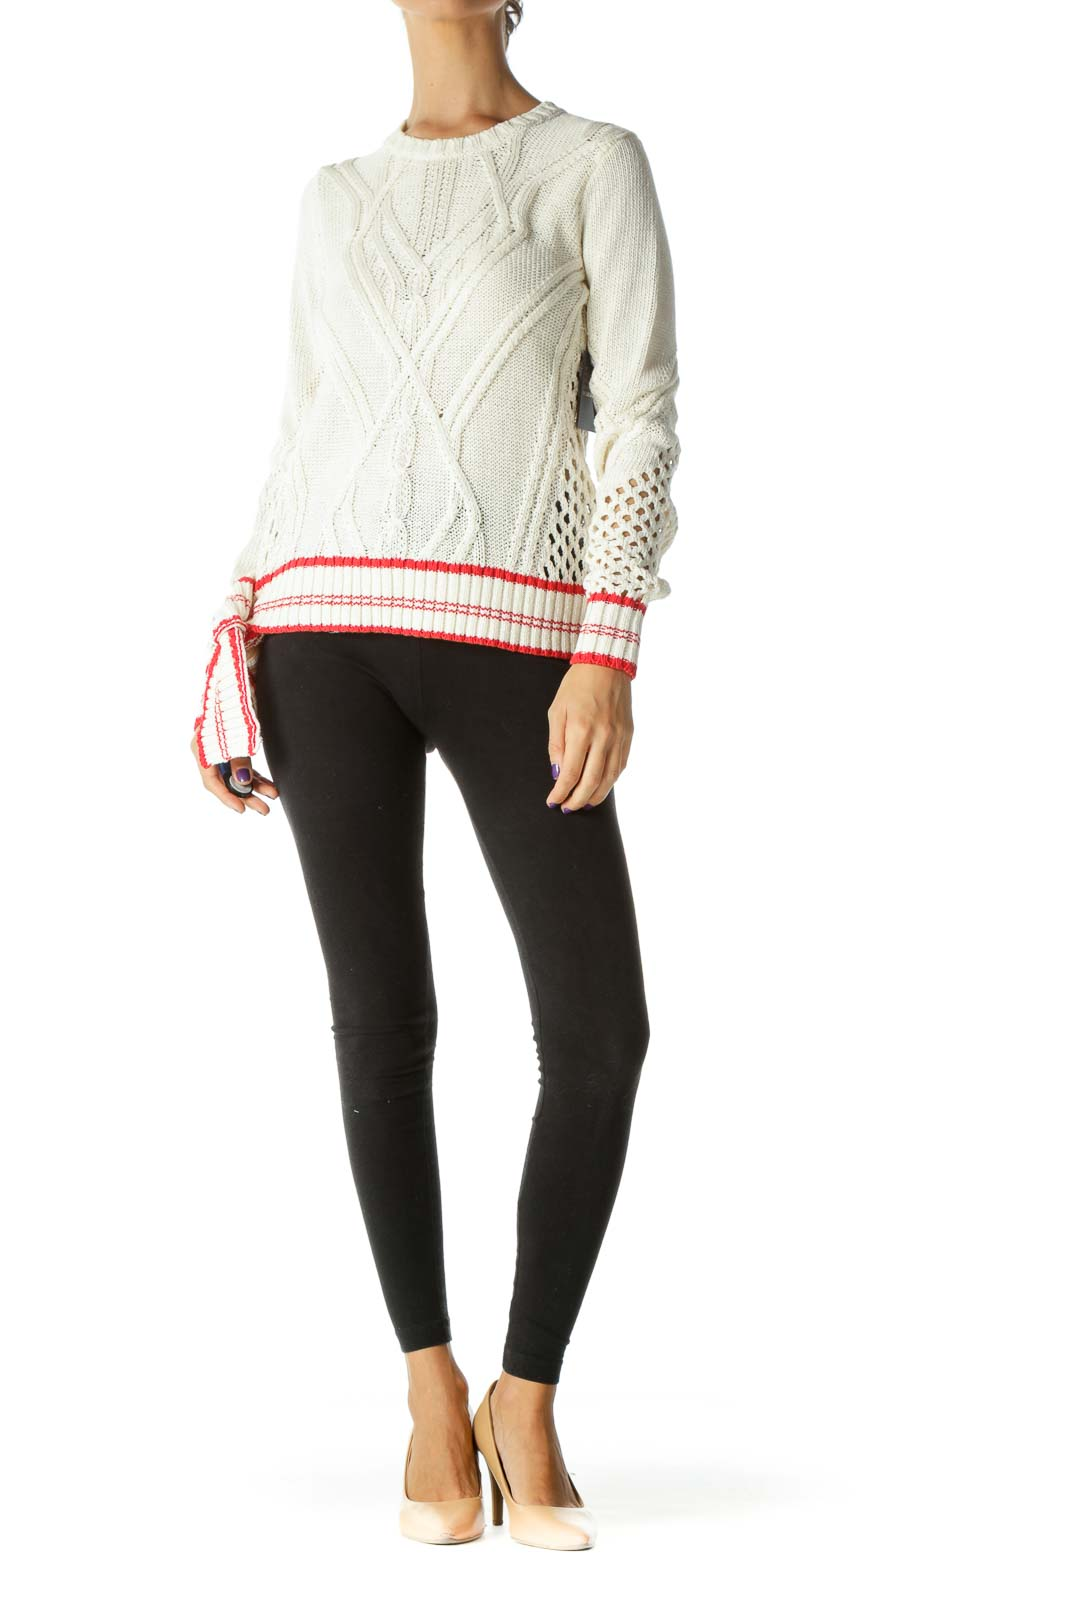 Cream Knit Sweater with Red Trim